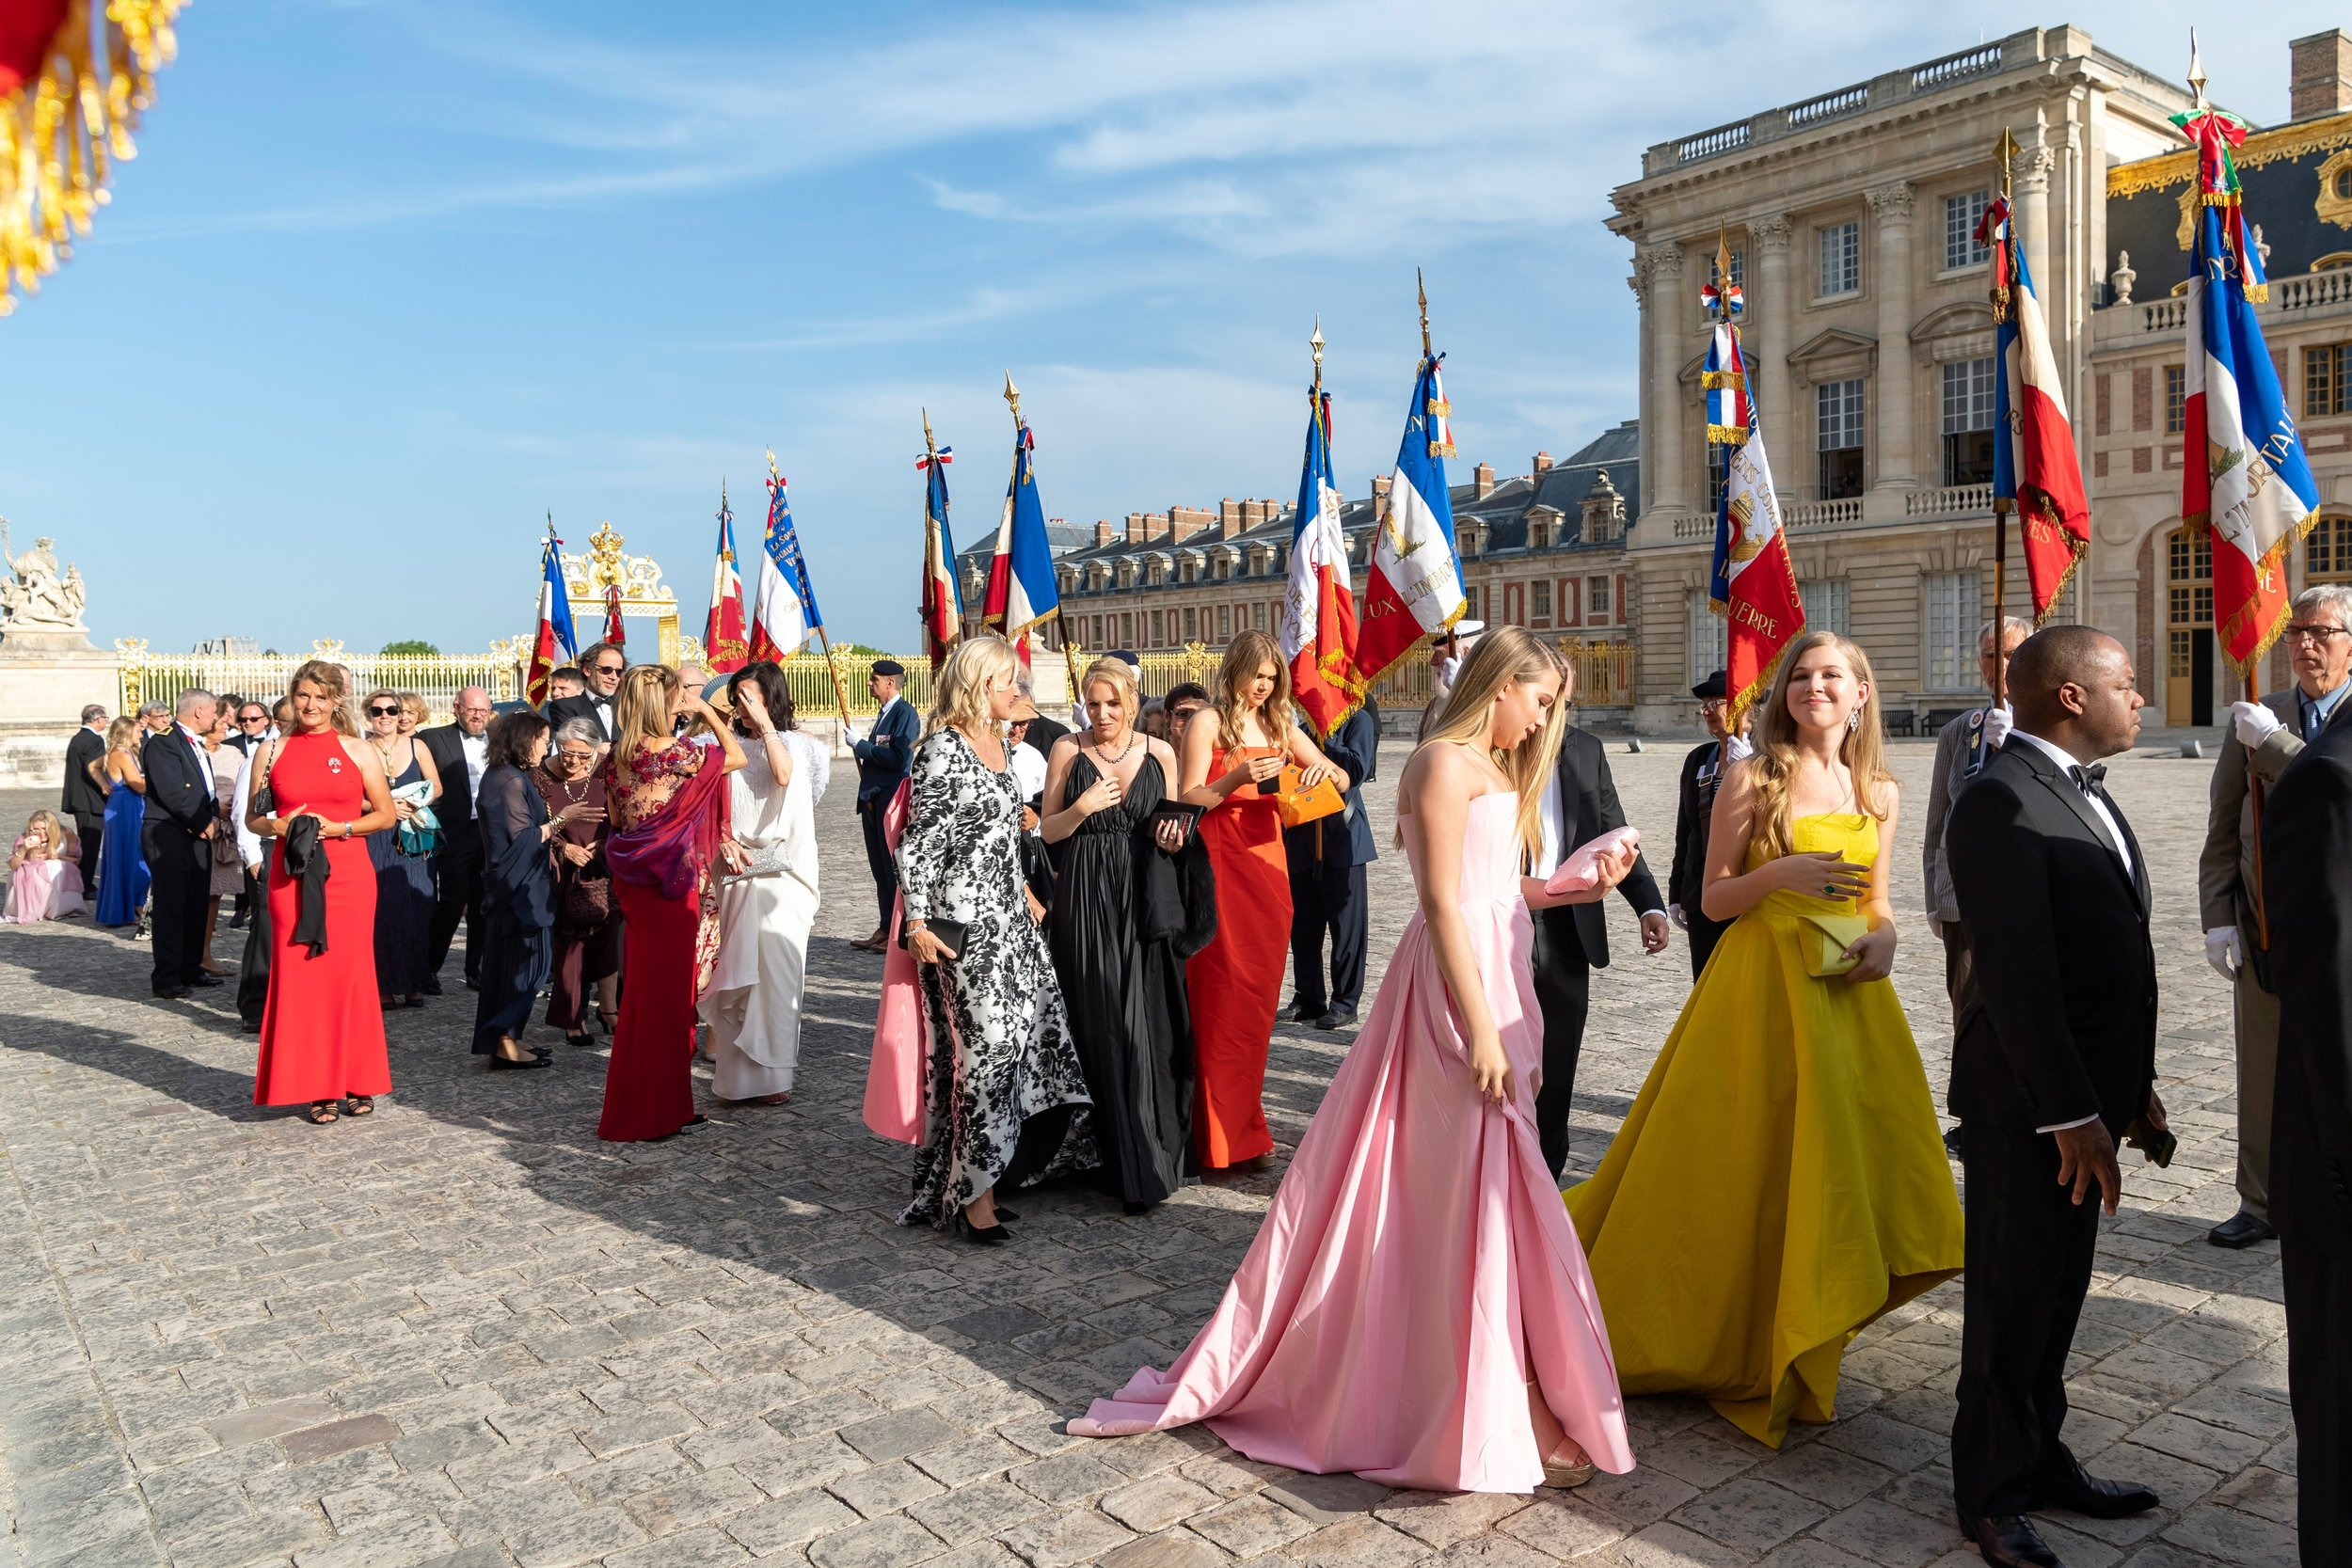 Guests at American Friends of Blerancourt at the Centennial of the Signing of the Treaty of Versailles at The Palace of Versailles in Versailles on 06/28/2019 (photo by Annie Watt Agency / Sipa USA)